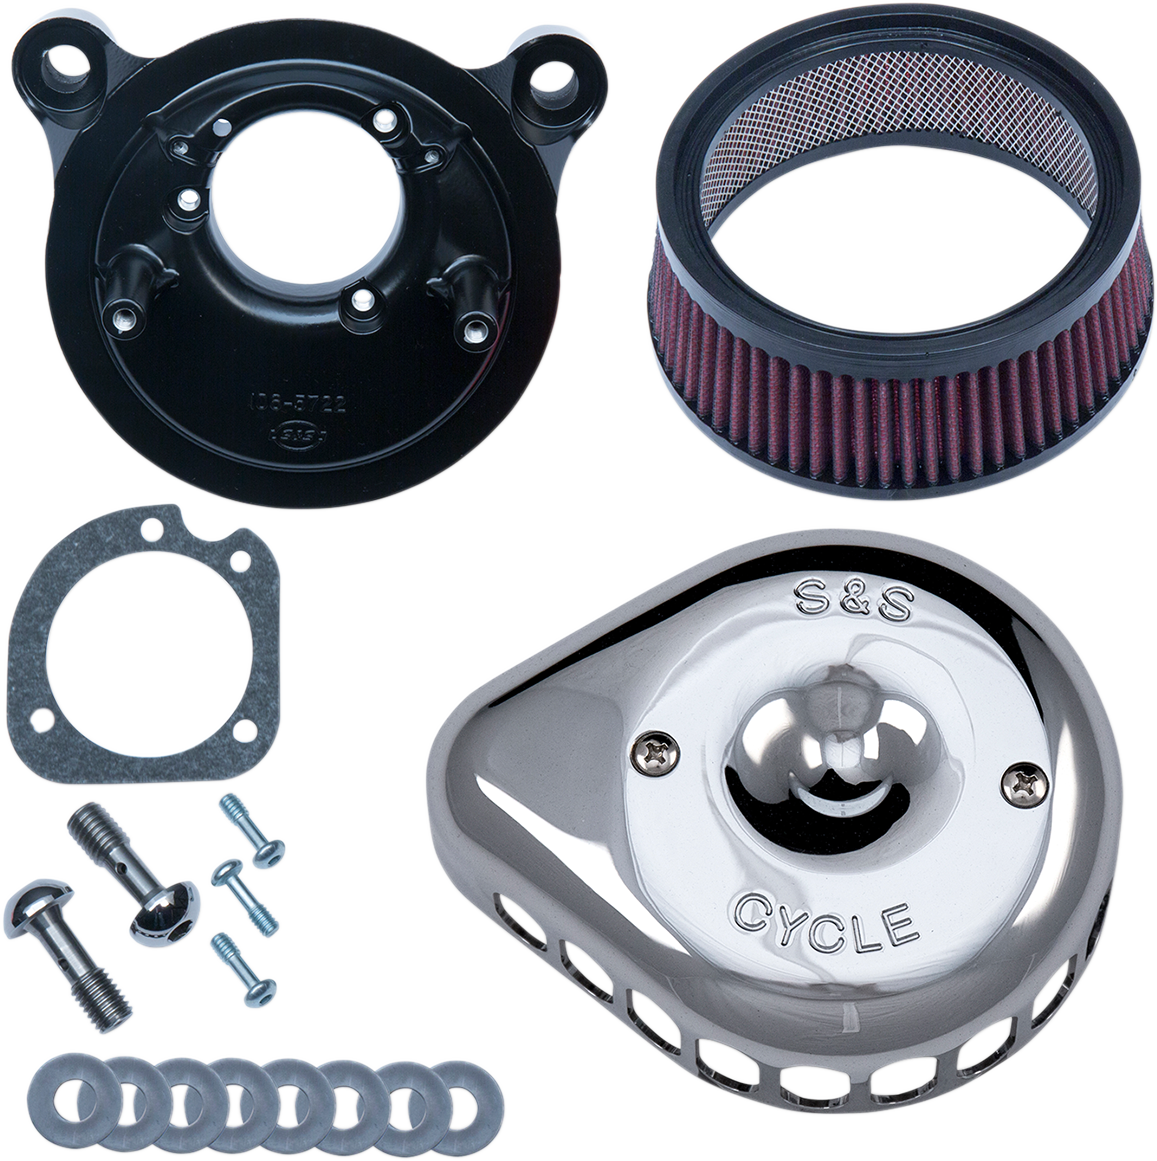 S&S Chrome Mini Teardrop Stealth Air Cleaner Kit for 01-17 Harley Dyna Touring